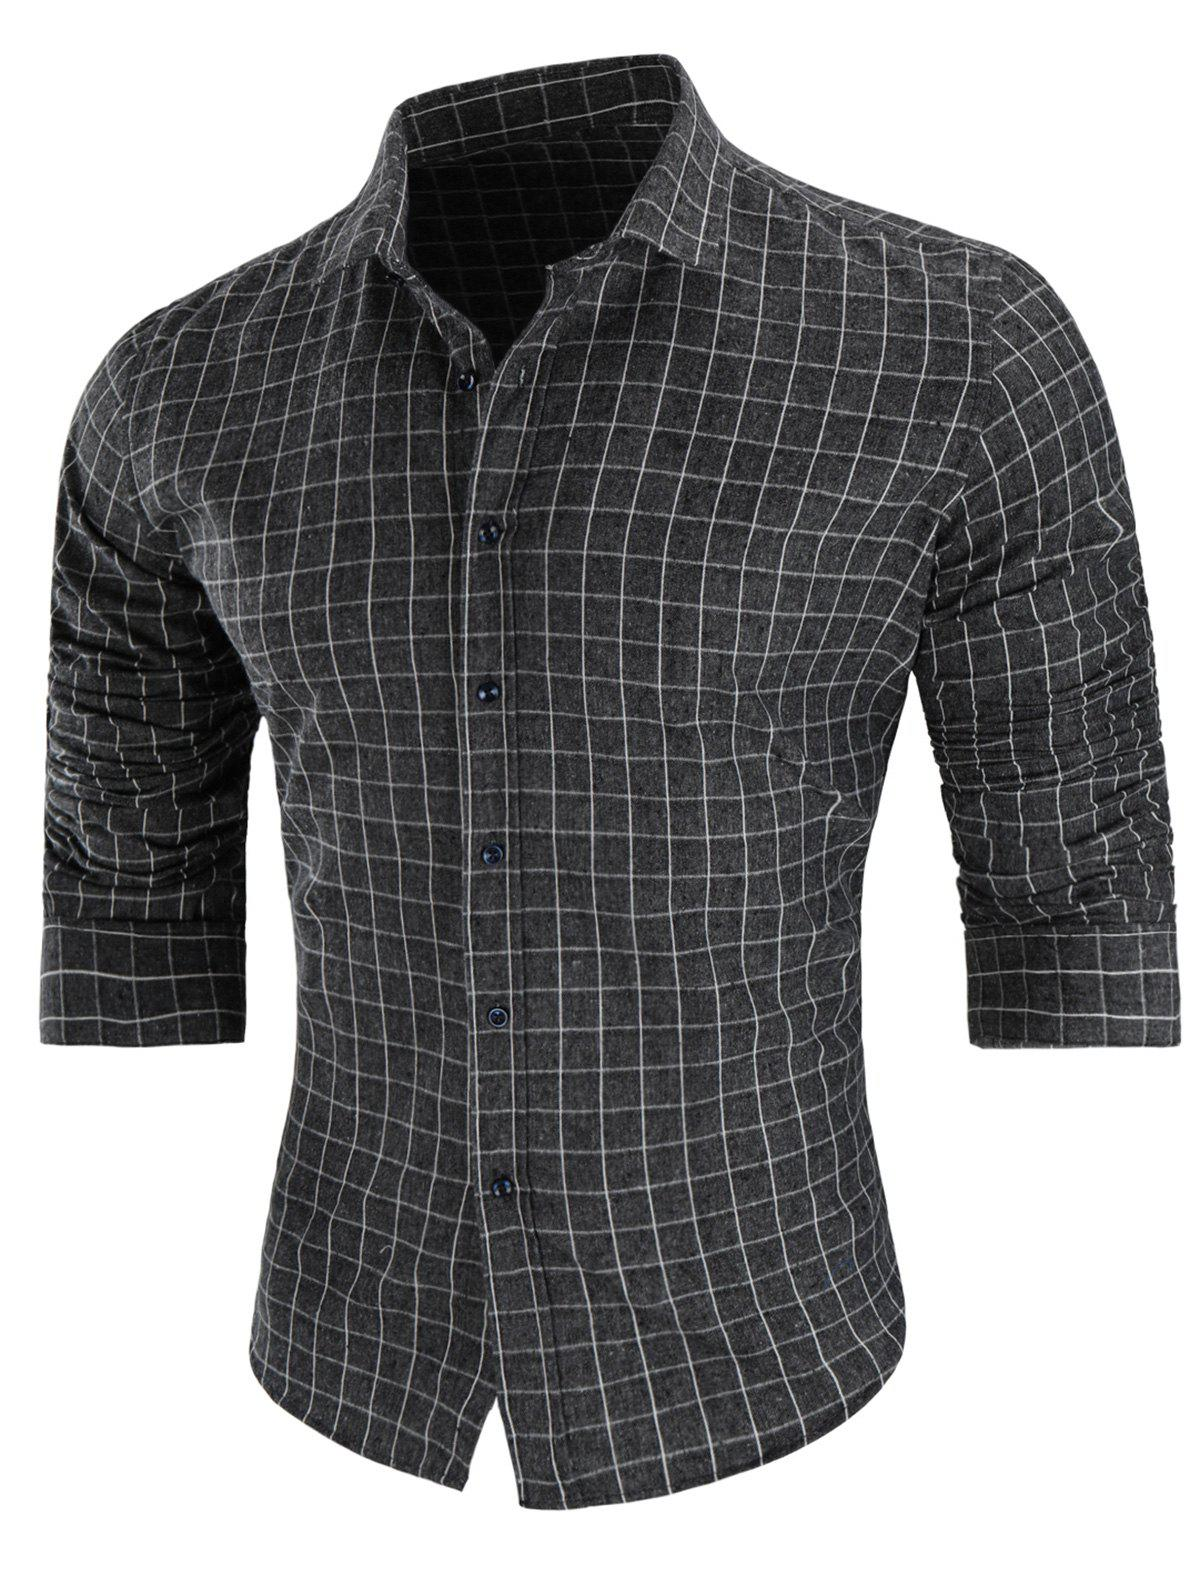 Online Casual Long-sleeved Grid Shirt